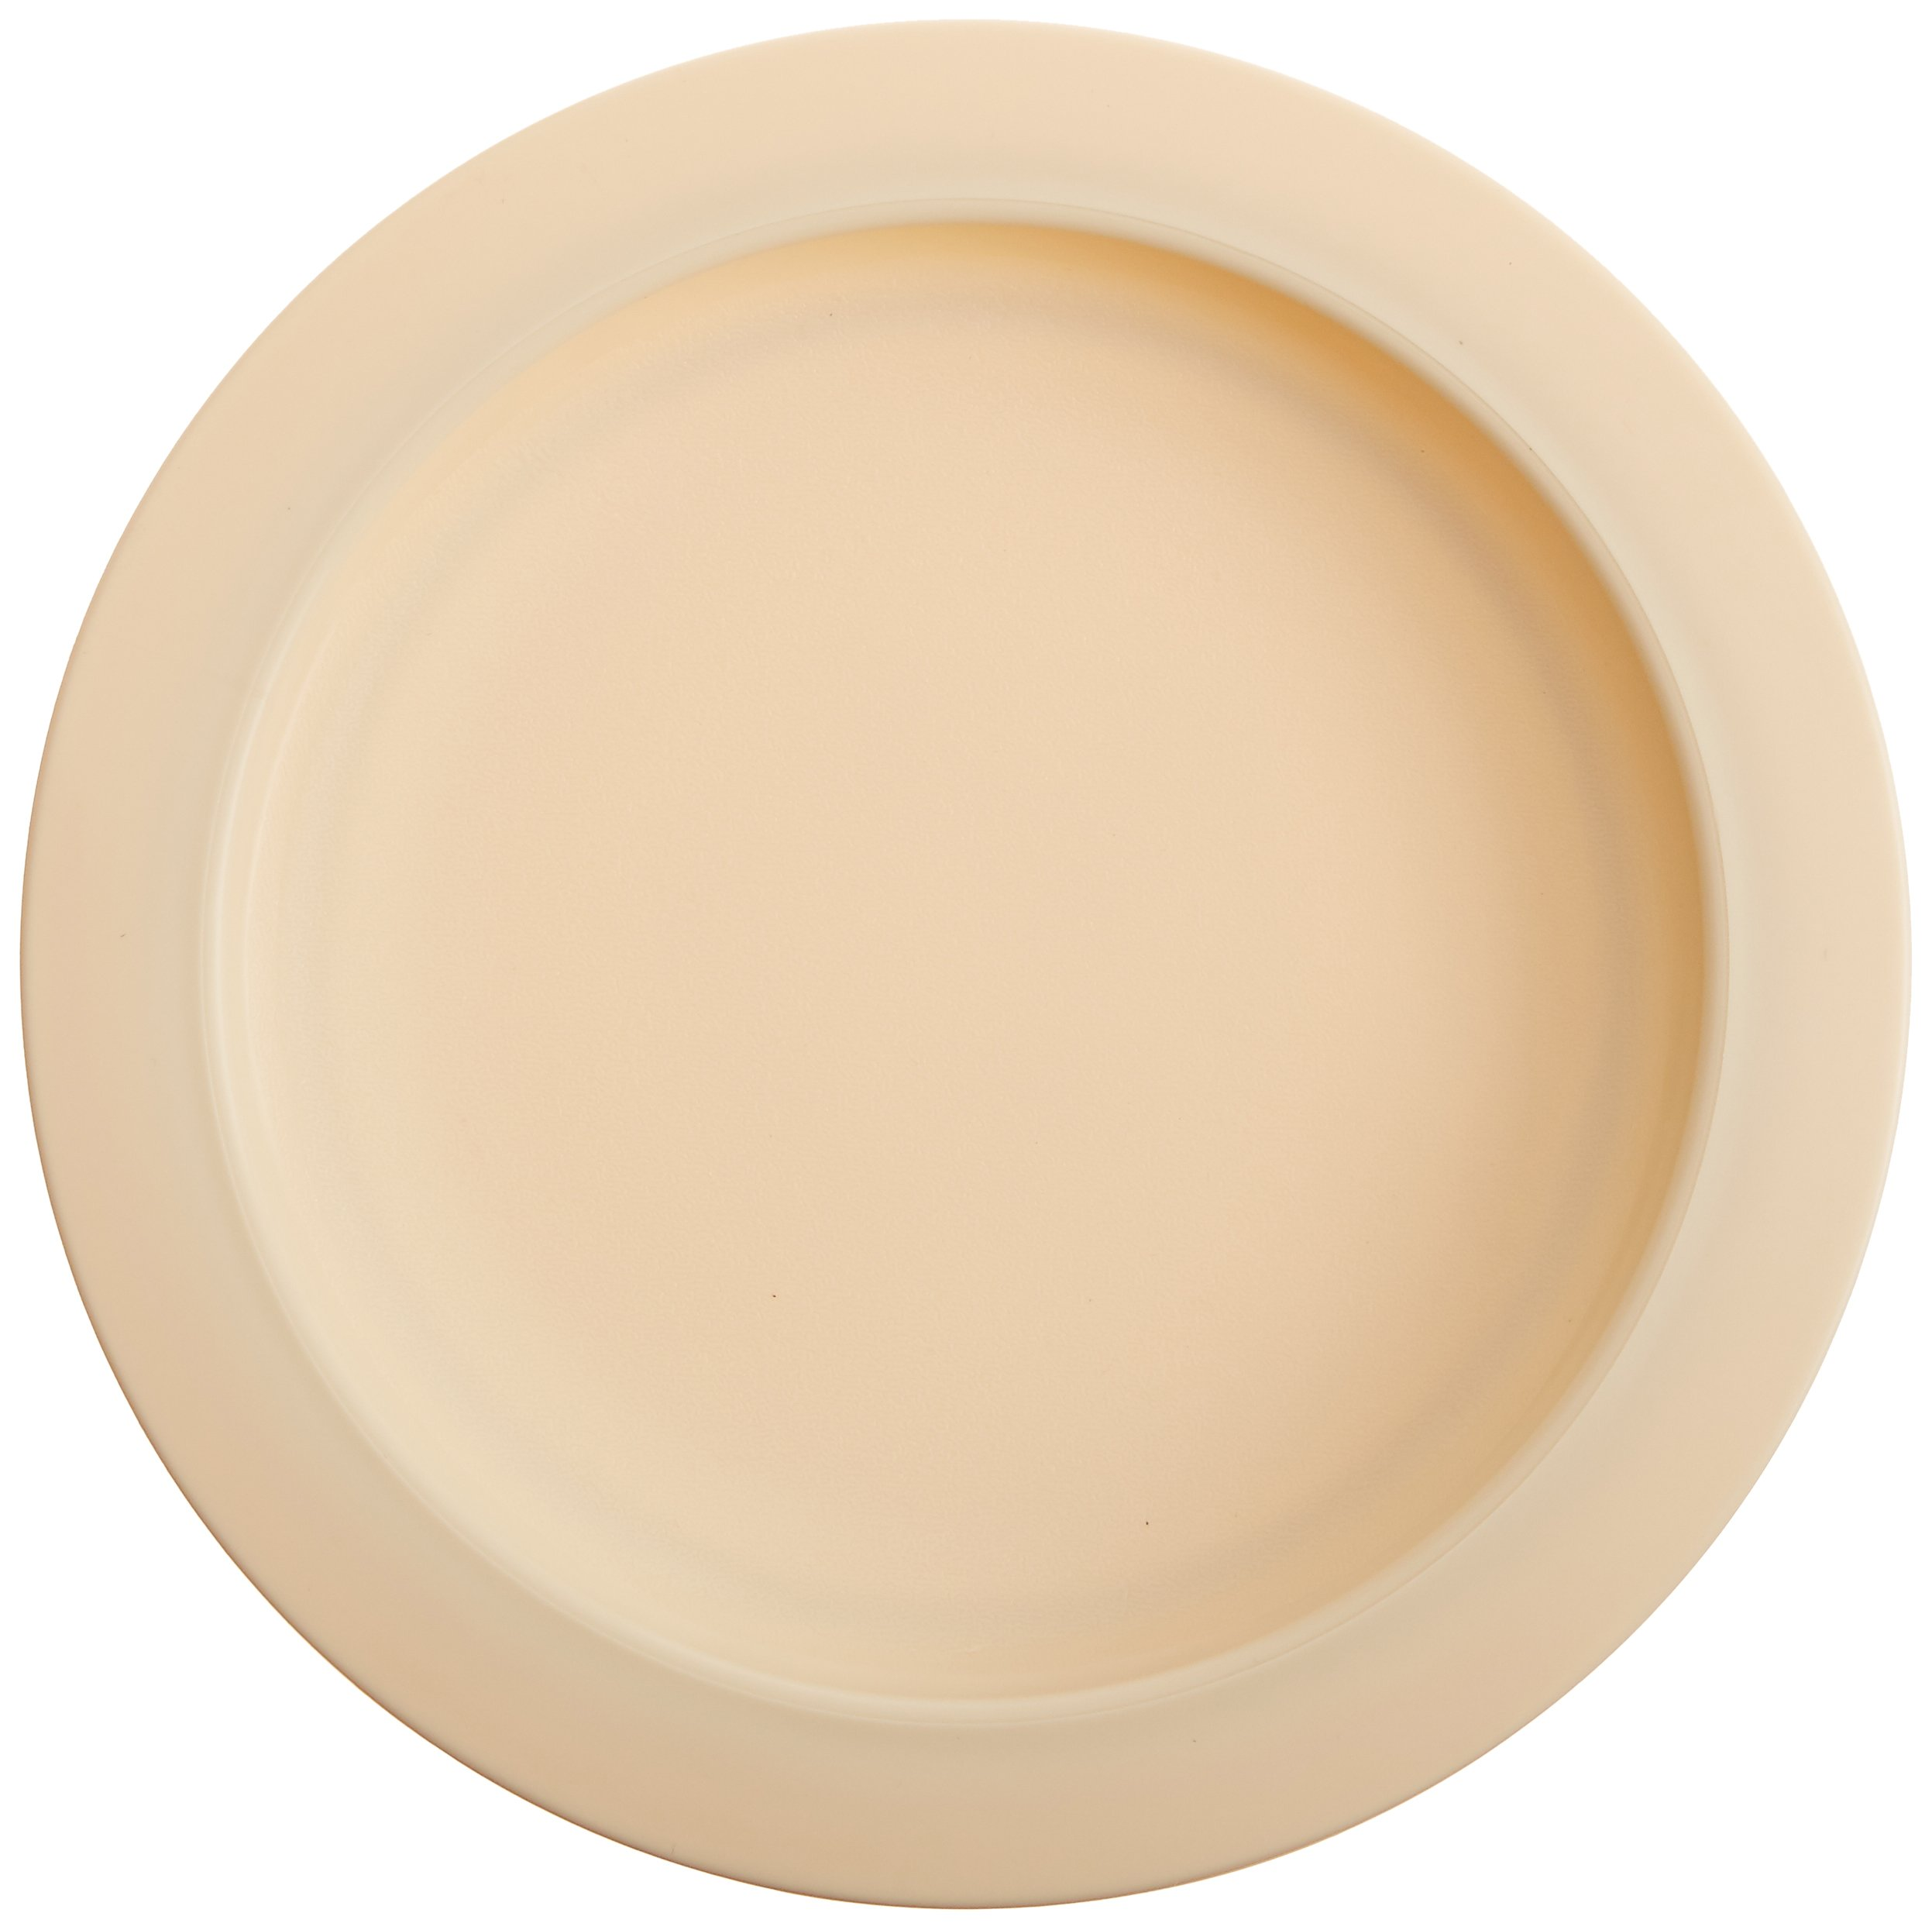 Sammons Preston Plate with Inside Edge, 9'' Plate with Food Spill Prevention Aid, Durable Plates with Inner Lip, Eating Support for Children, Adults, Elderly and Disabled, Polypropylene, Off-White